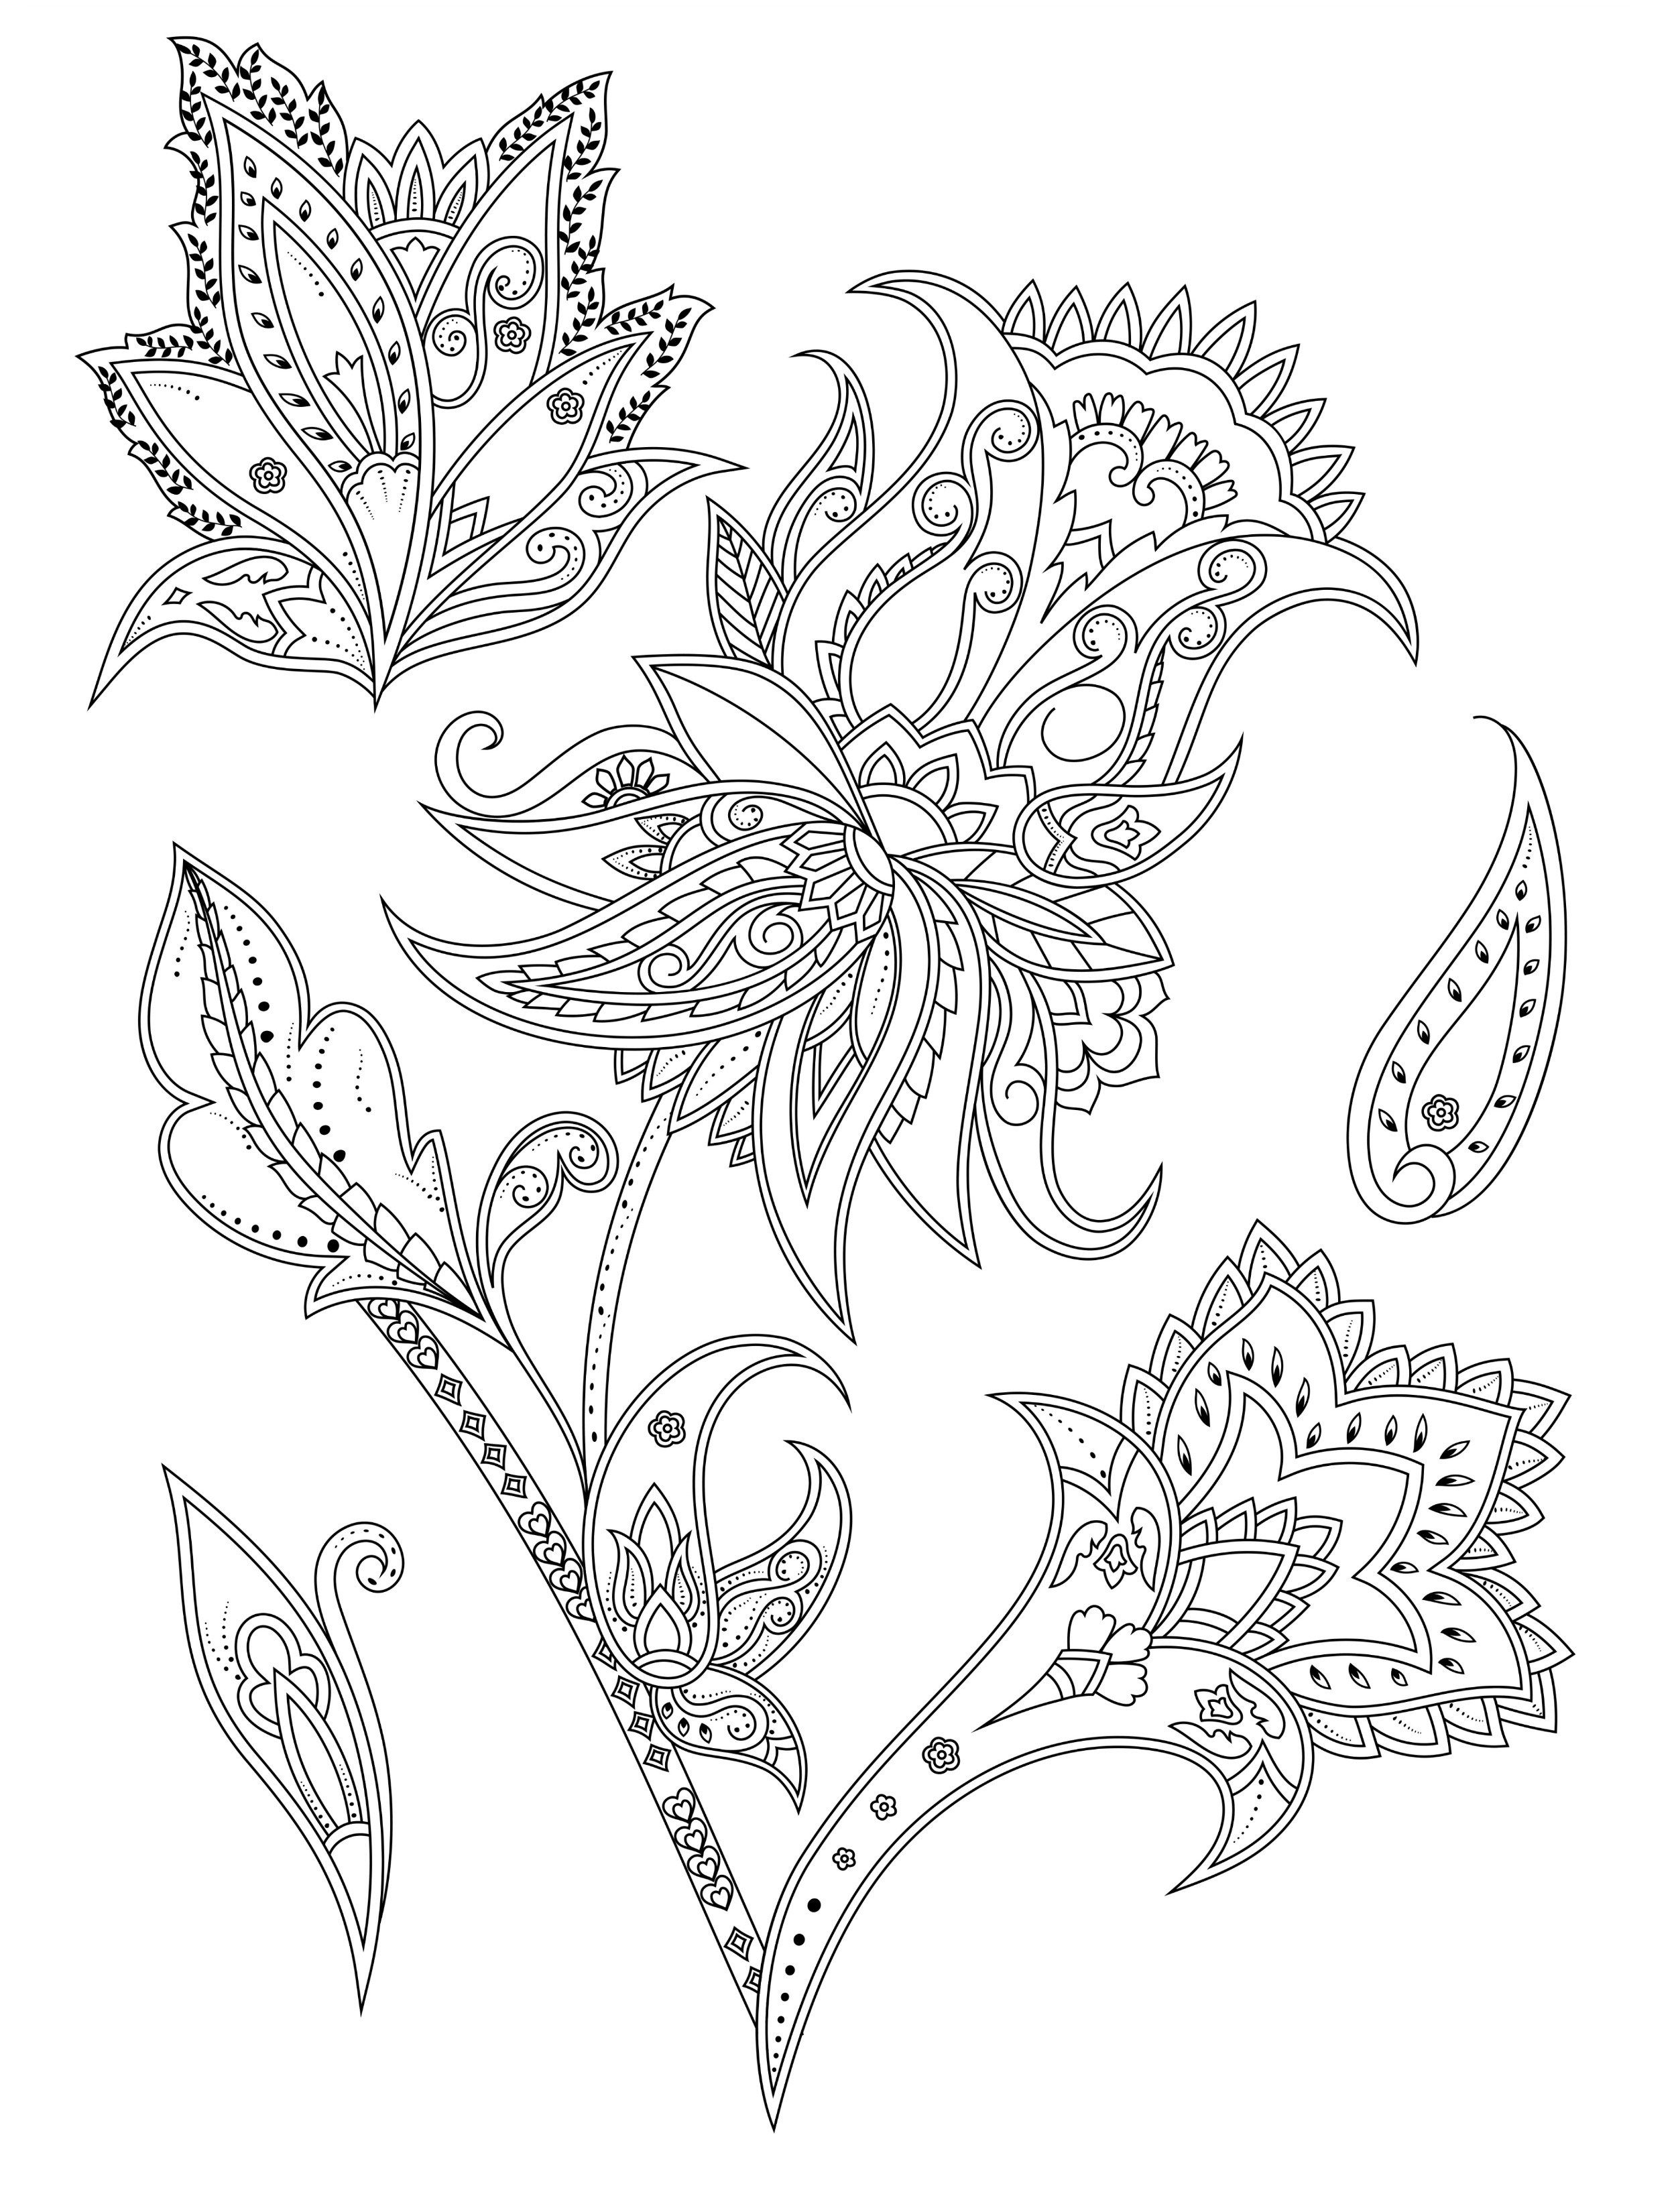 20 Gorgeous Free Printable Adult Coloring Pages - Page 21 of 22 ...